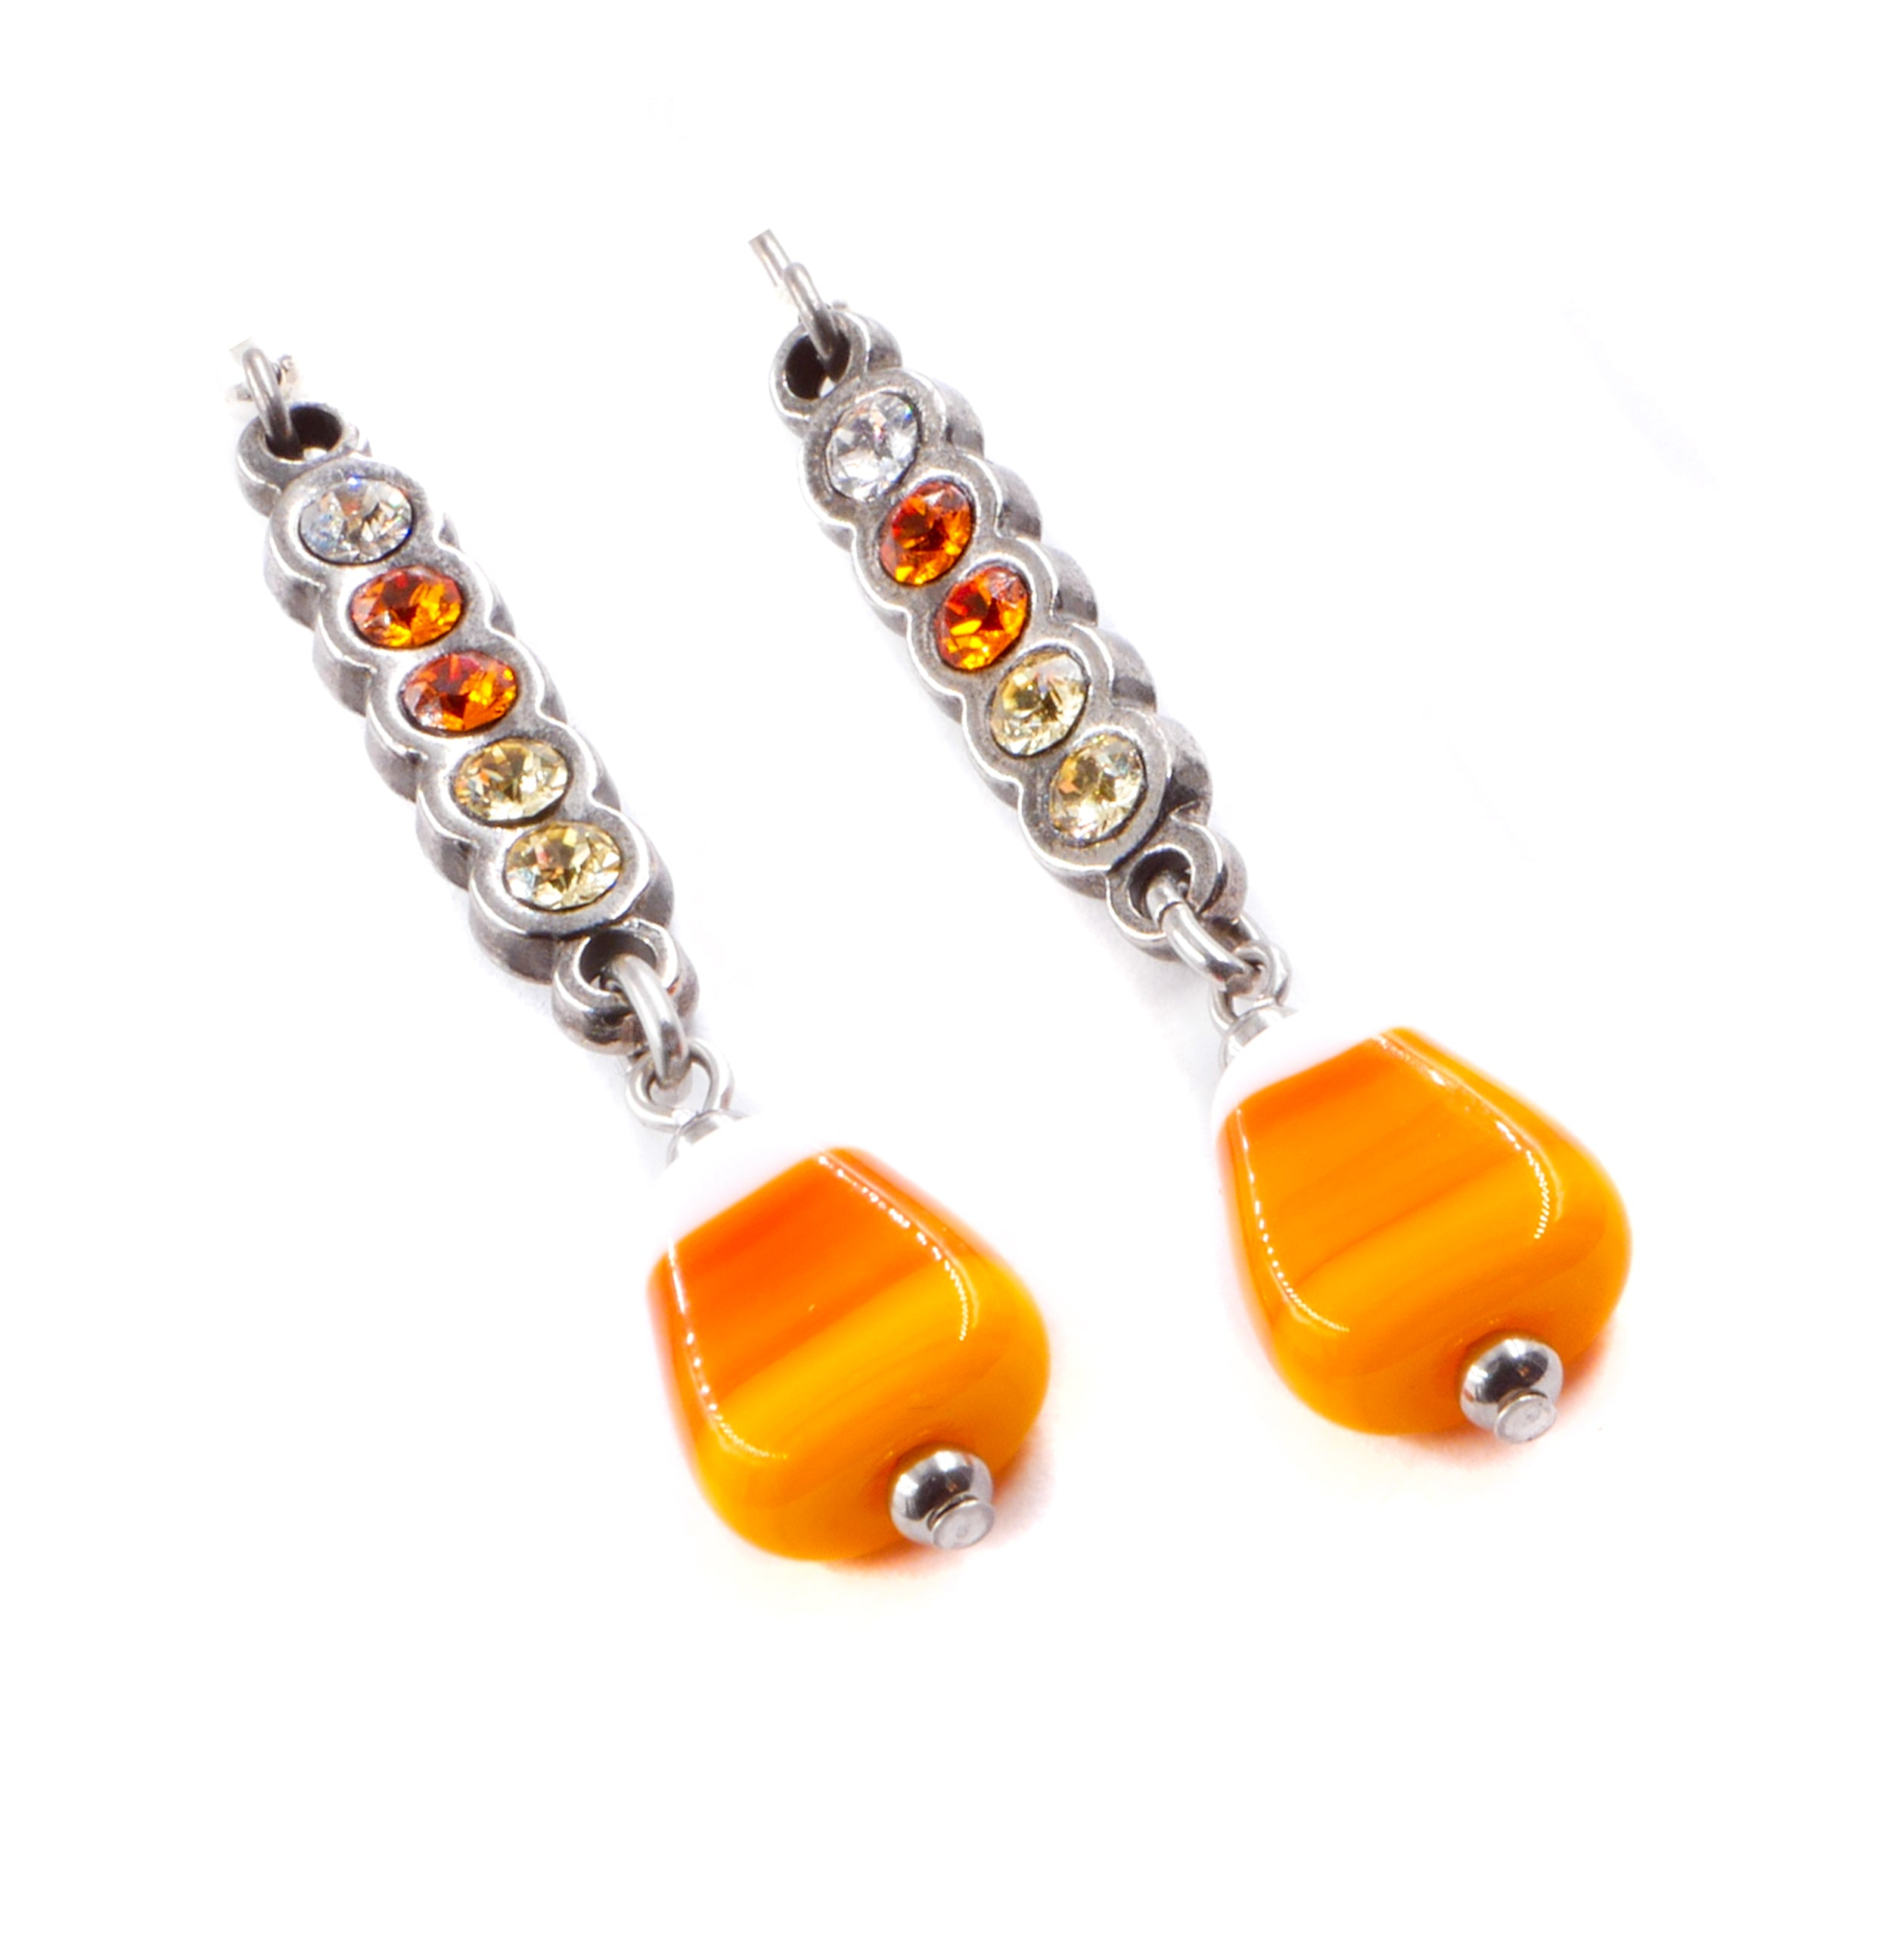 e6b1e37d8 Crystal Candy Corn Earrings for Halloween in Non Tarnish Stainless Steel –  Blackberry Designs Jewelry